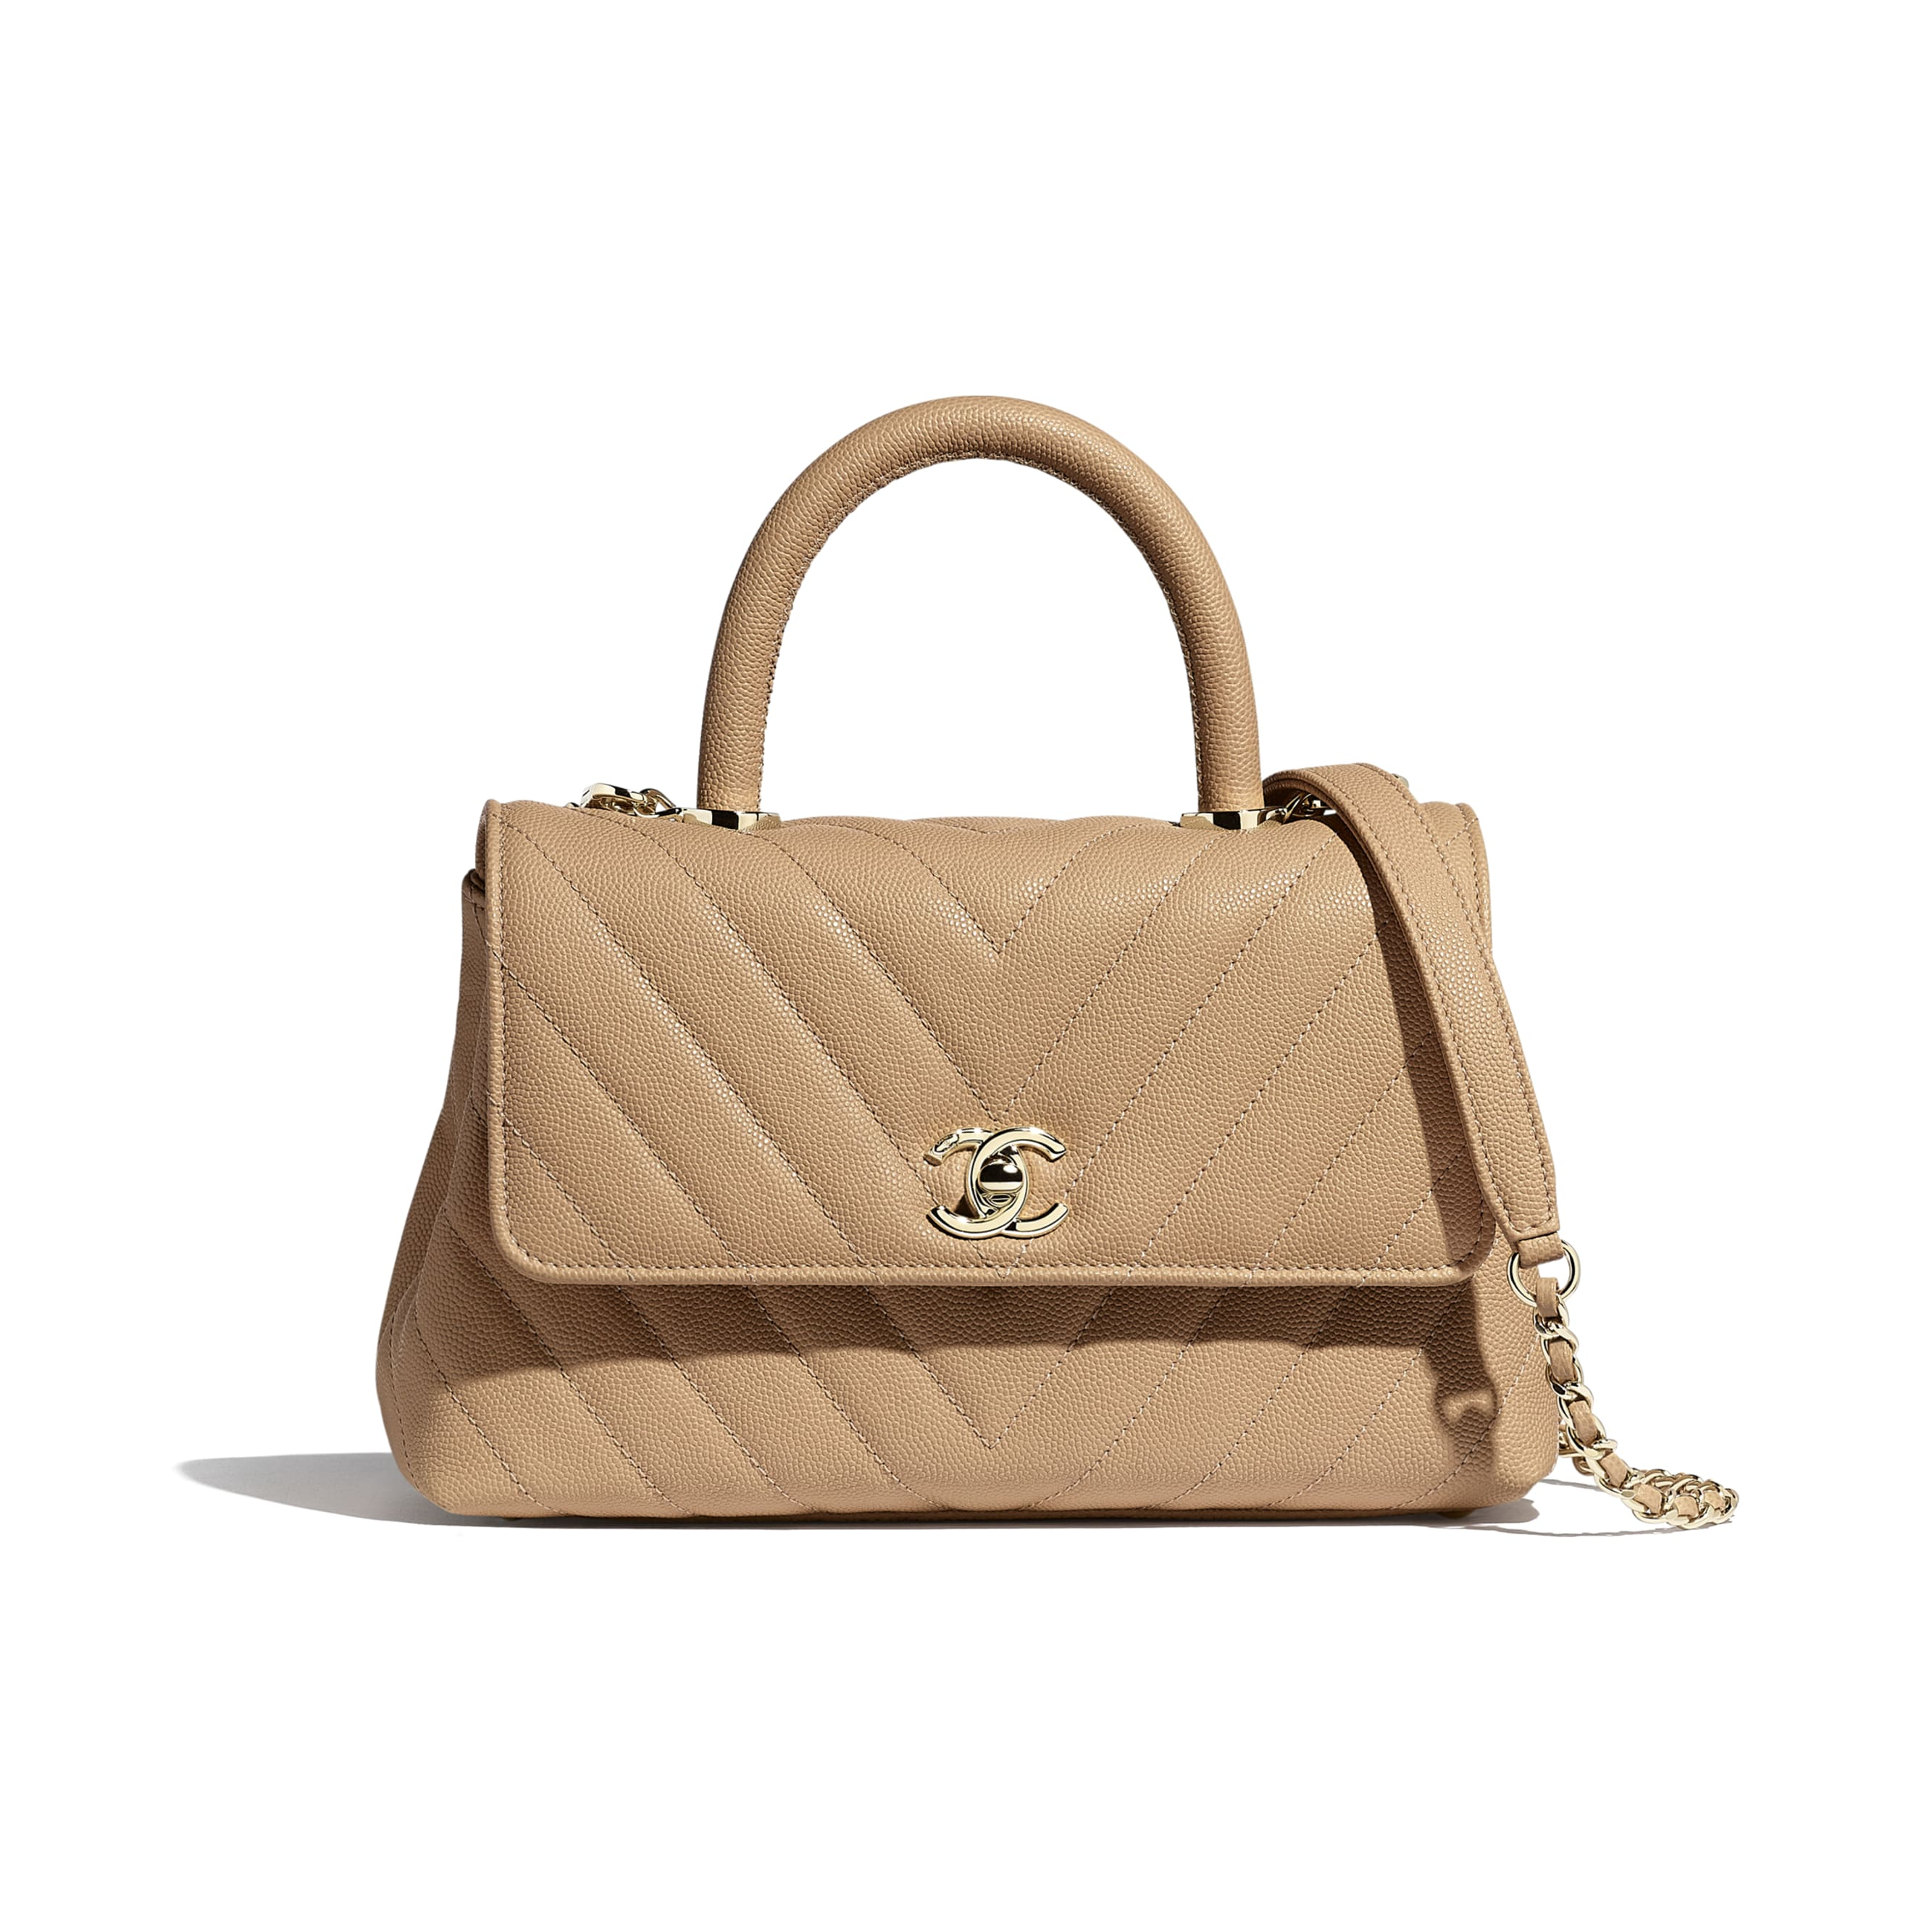 Small Flap Bag With Top Handle - Beige - Grained Calfskin & Gold-Tone Metal - Default view - see standard sized version